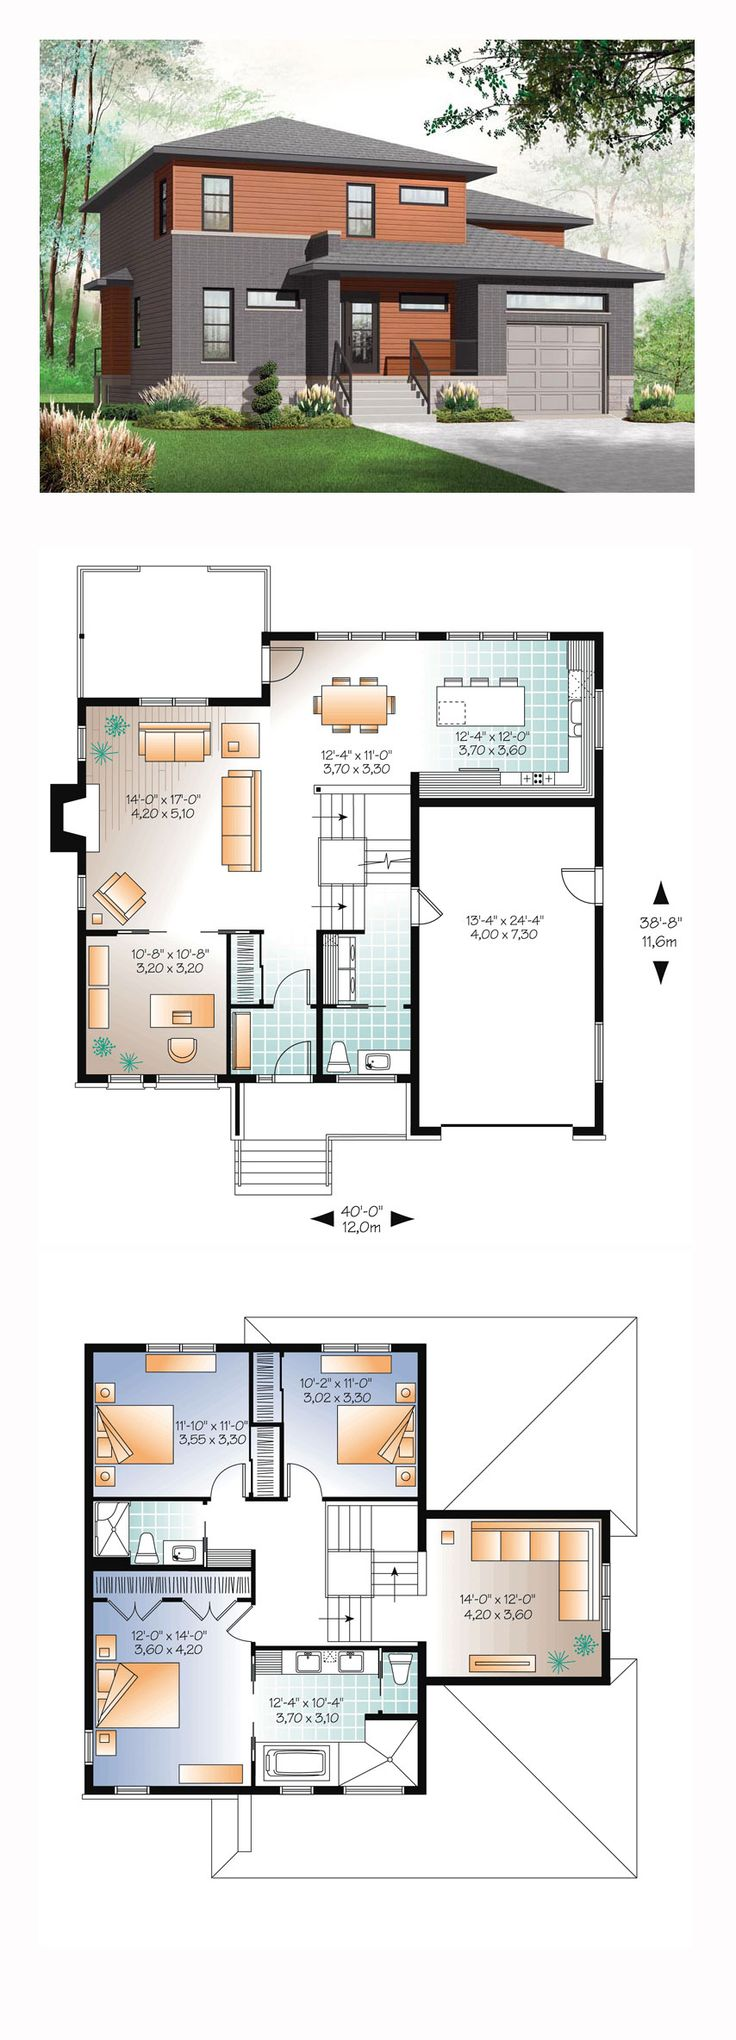 Home Plans Modern | 62 Best Modern House Plans Images On Pinterest Colours Floor